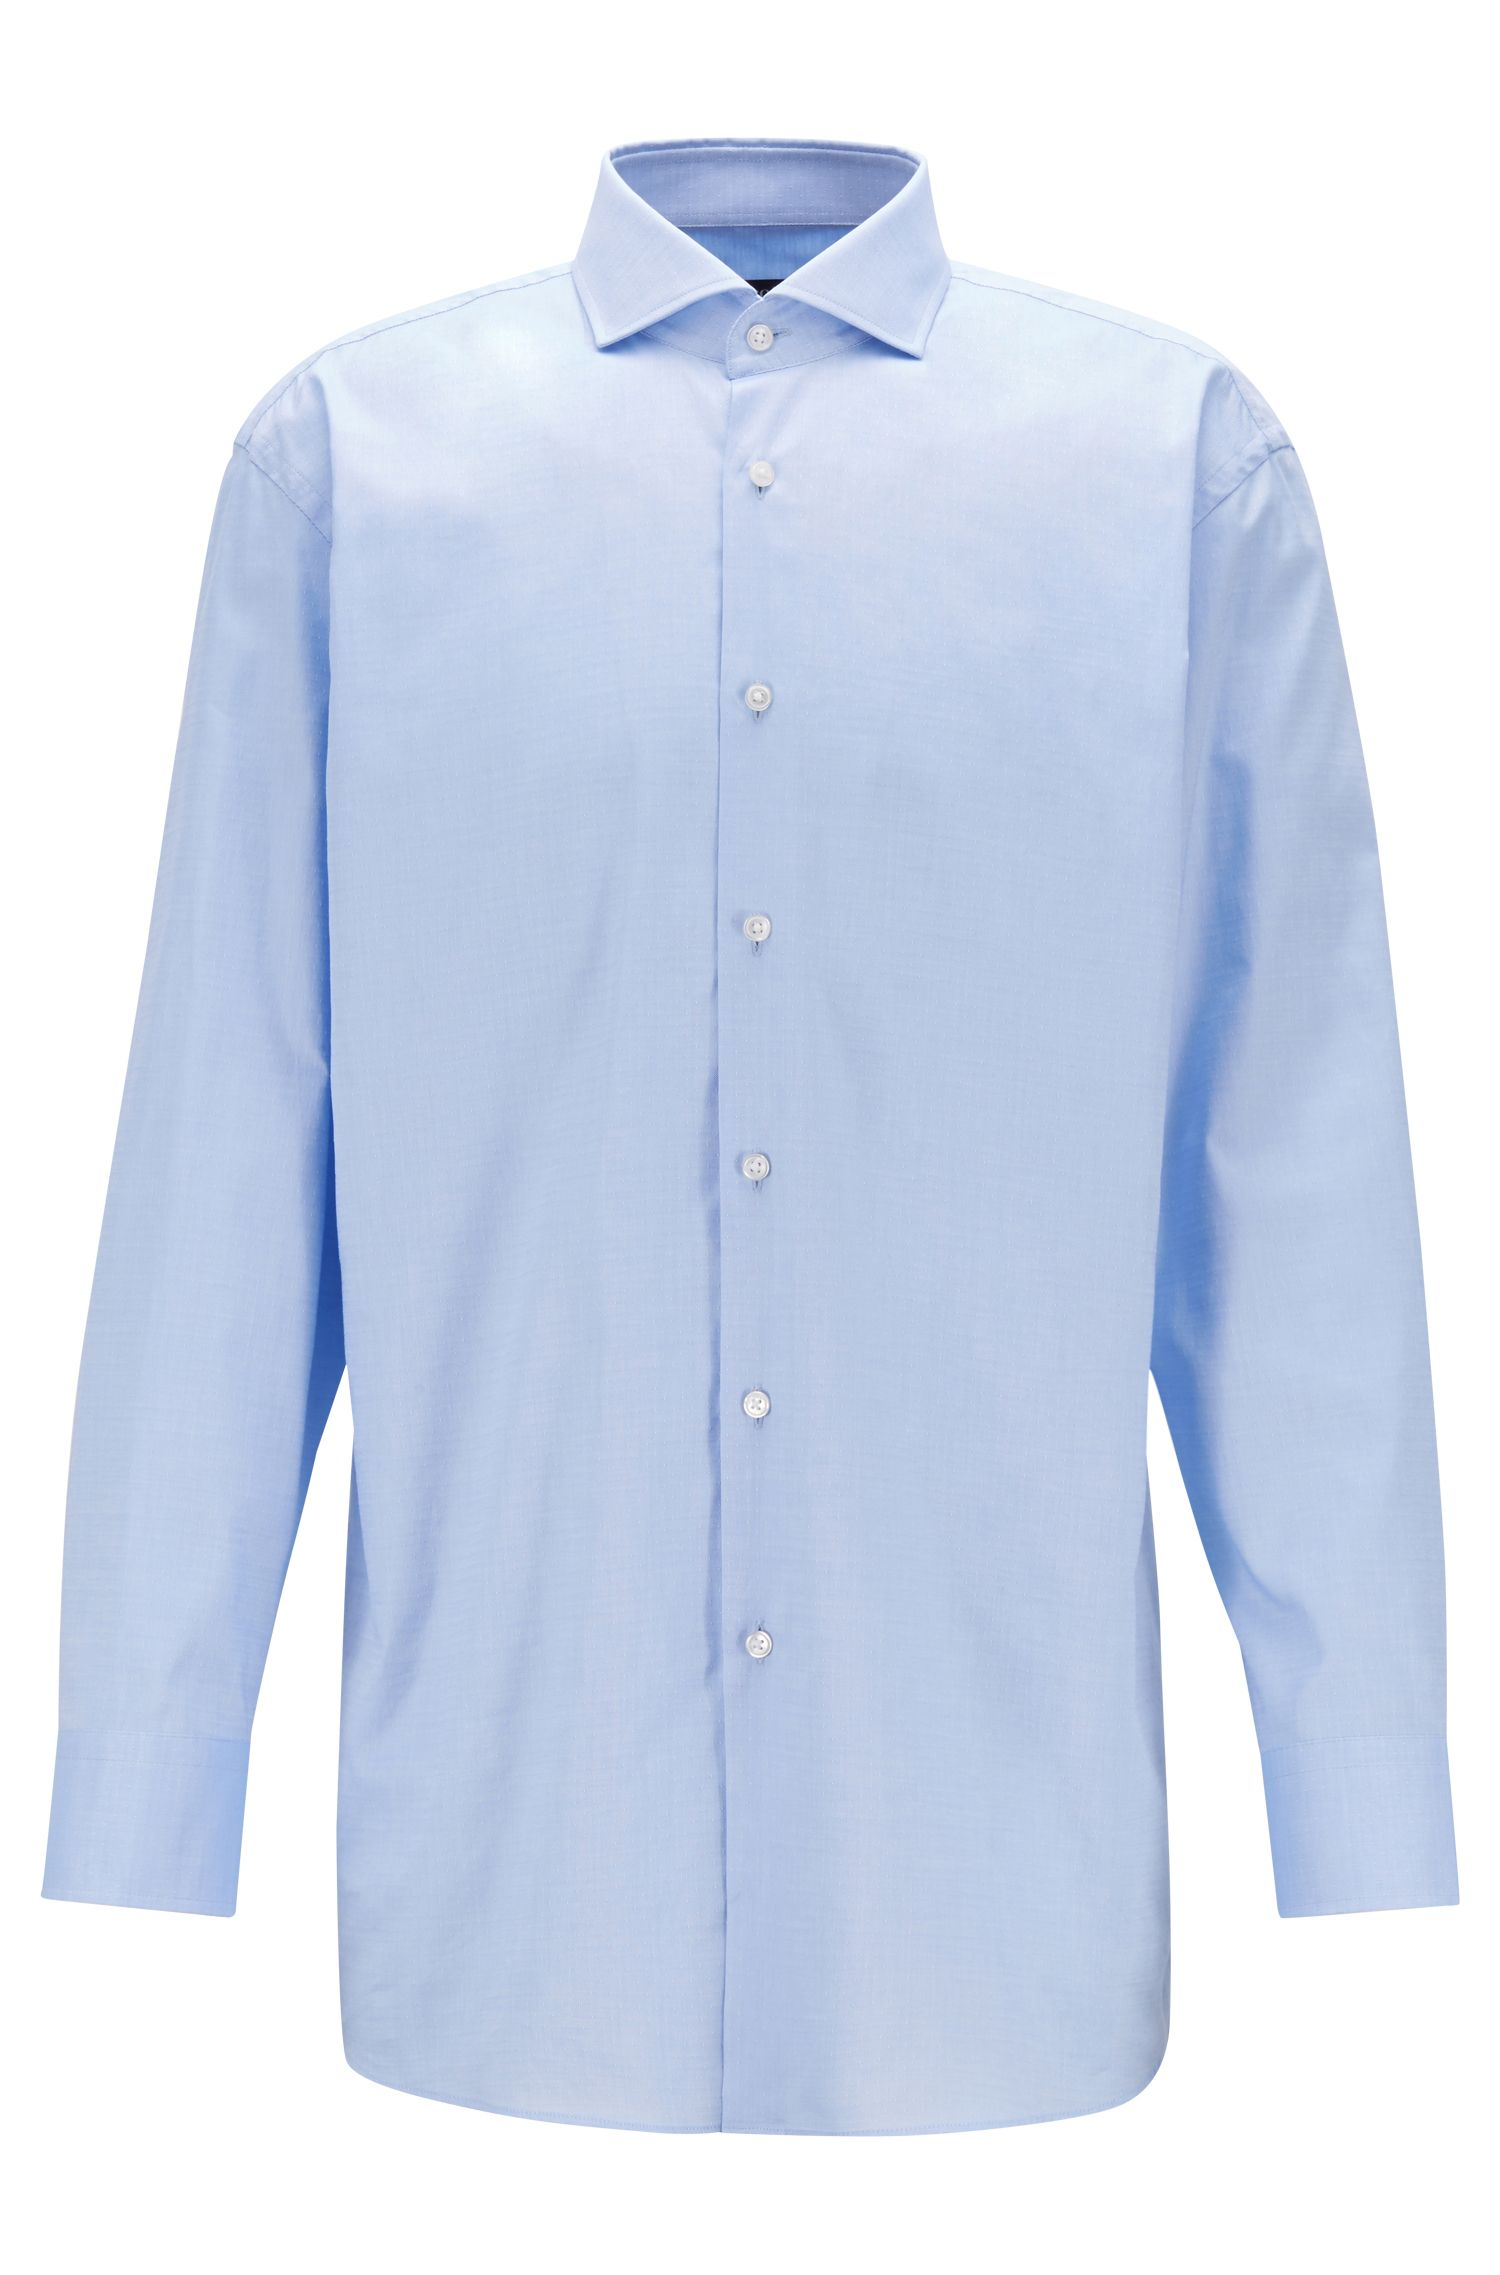 Sharp-fit shirt in patterned dobby cotton, Light Blue